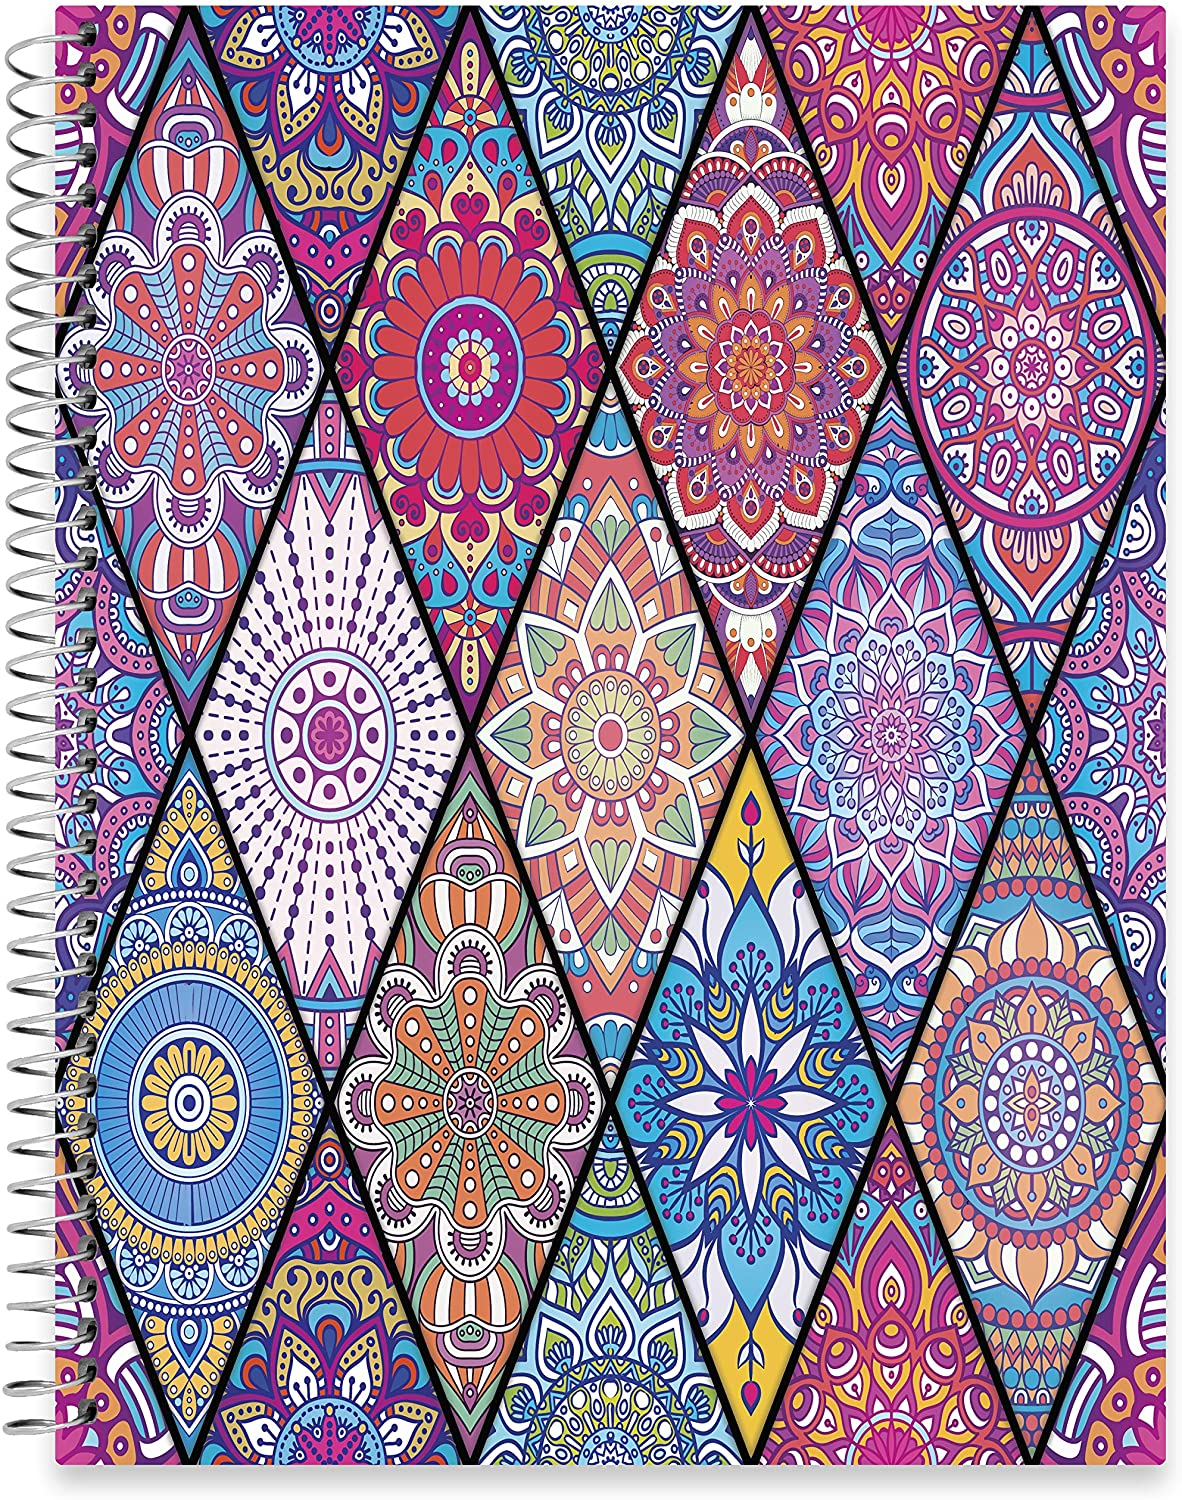 "July 2020 - June 2021 Softcover Planner - 8.5"" x 11"" - Bejeweled v2 Cover"